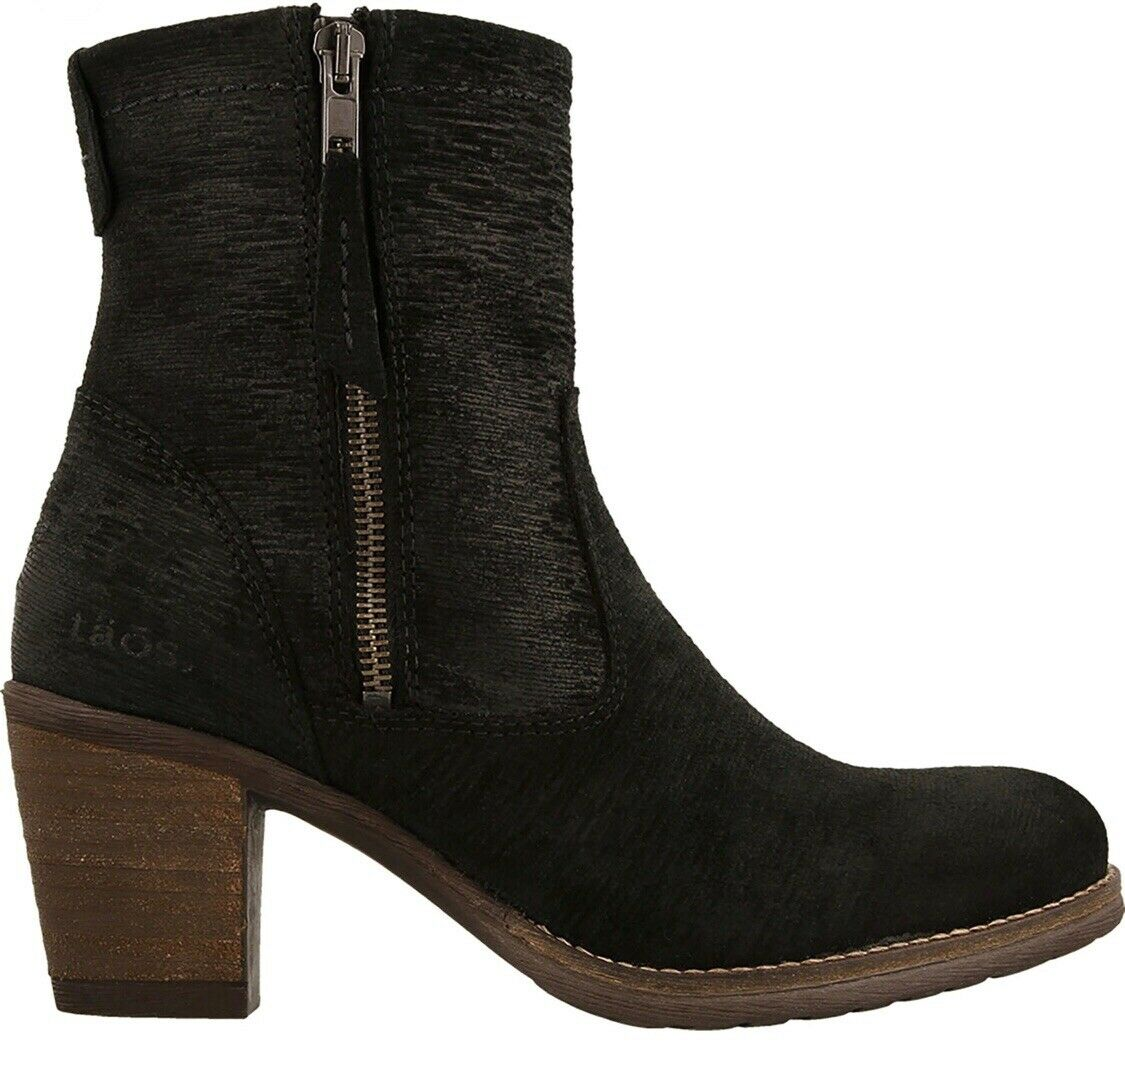 Taos Women's Shaka 2 Black Suede Leather Side Zip Ankle Boot Size 9-9.5 Euro 40